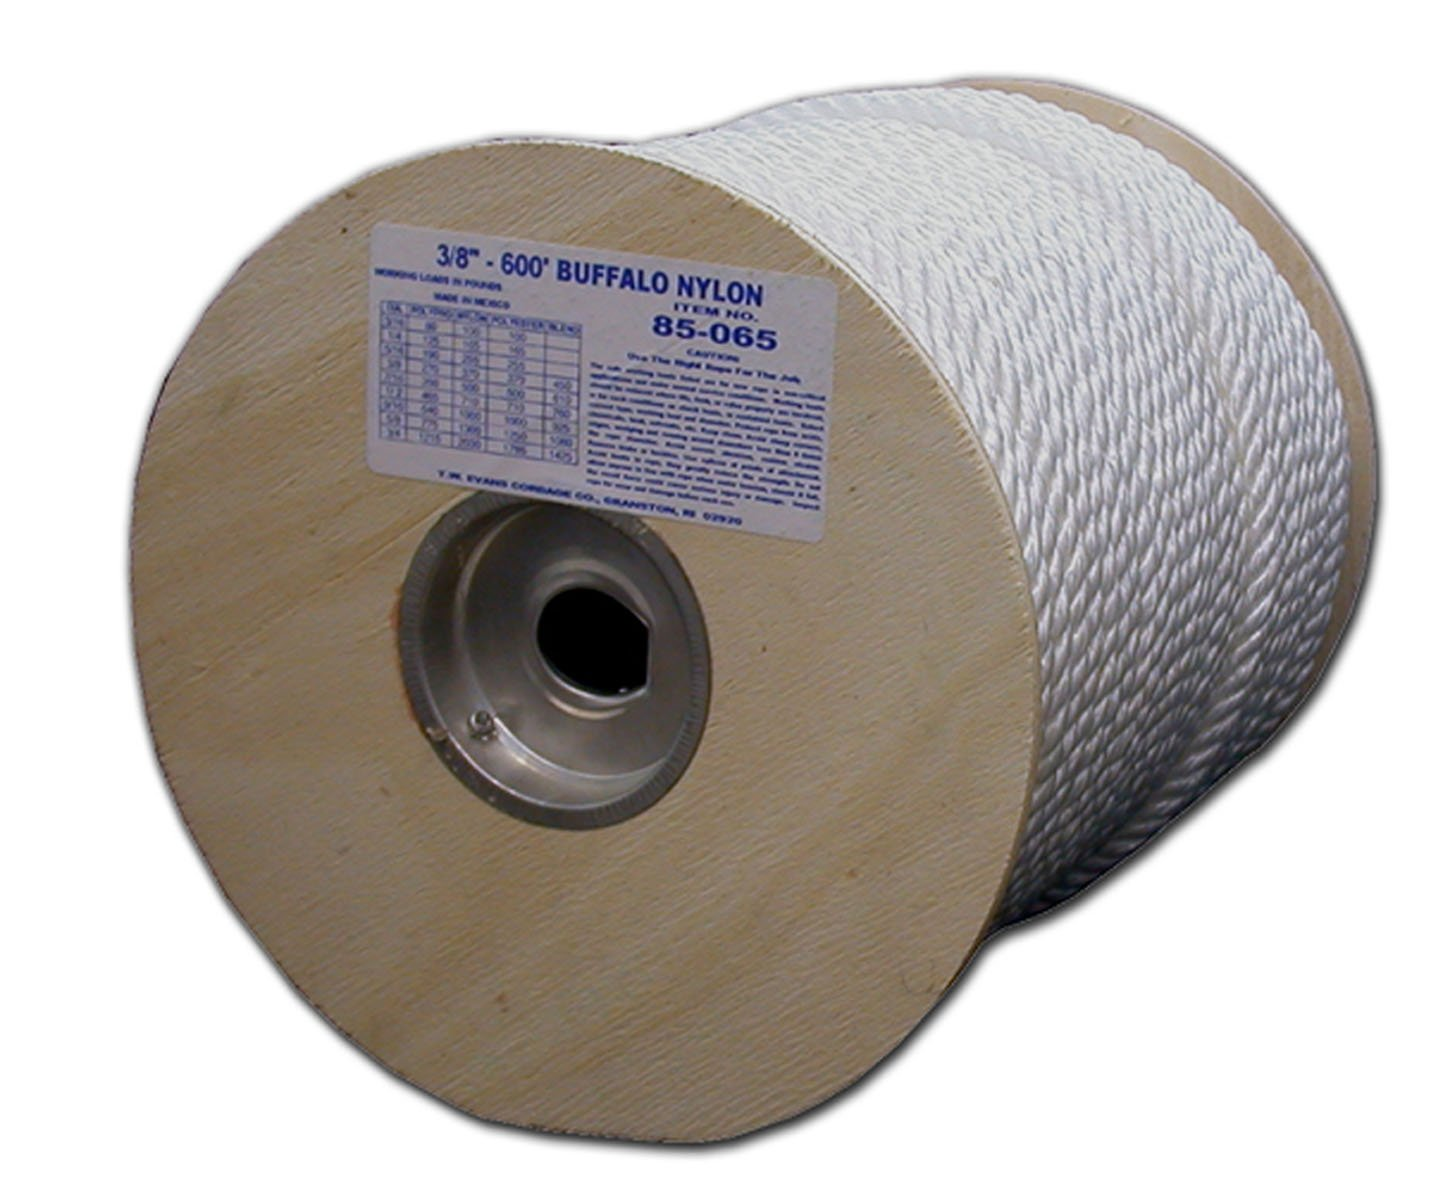 T.W Evans Cordage 85-063 3/8-Inch by 300-Feet Twisted Nylon Rope by T.W . Evans Cordage Co. (Image #1)